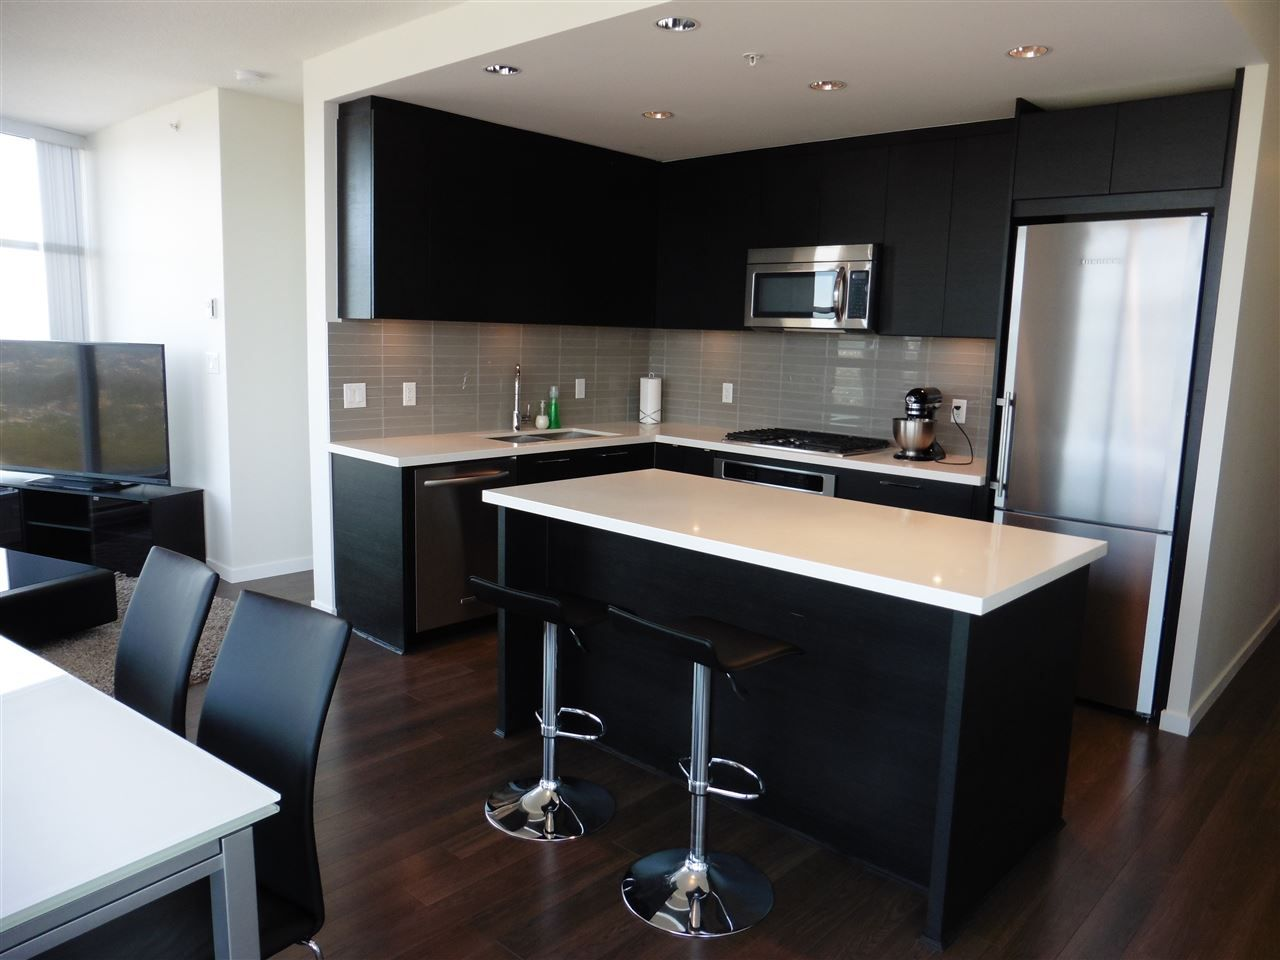 """Photo 7: Photos: 3702 4880 BENNETT Street in Burnaby: Metrotown Condo for sale in """"CHANCELLOR"""" (Burnaby South)  : MLS®# R2006395"""